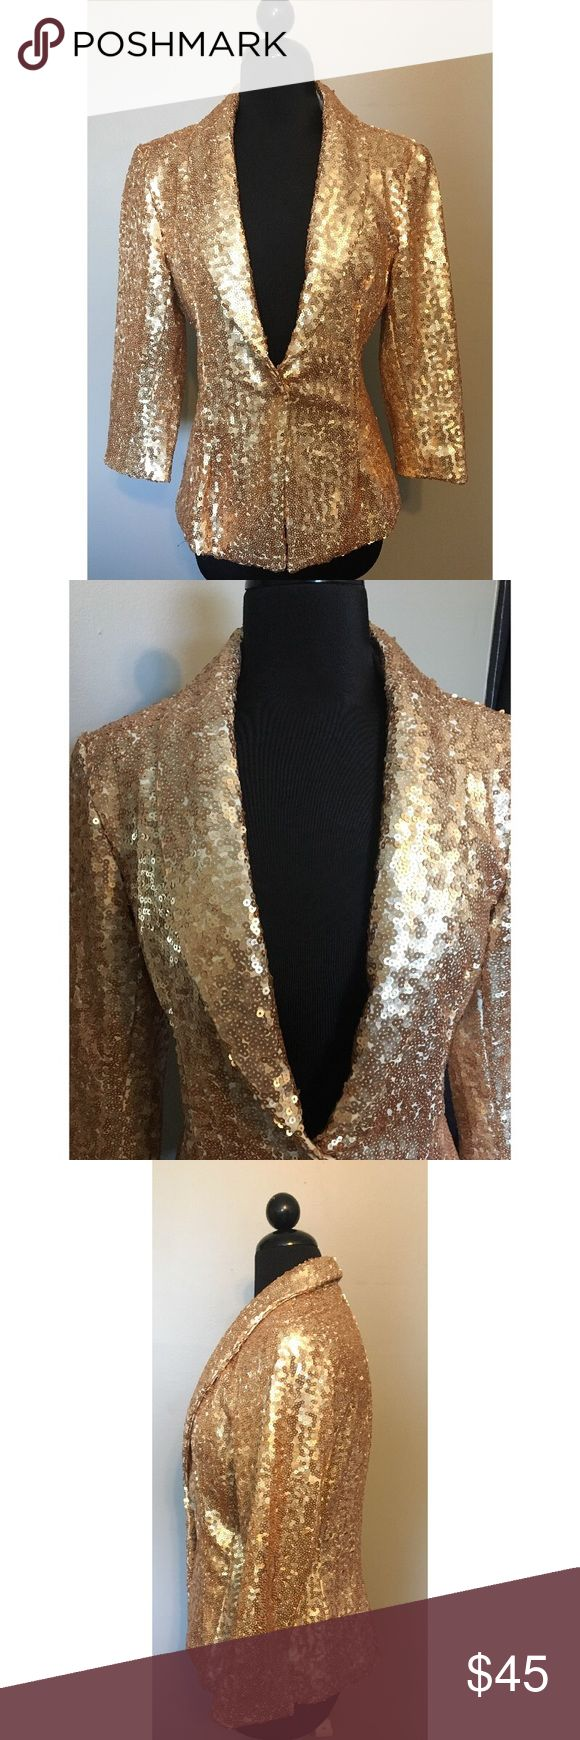 NWOT!! NY&Co. gold sequin blazer NWOT! Gold sequin blazer is for sure a show stopper! This fun and bright blazer has never been worn. New York & Company Jackets & Coats Blazers